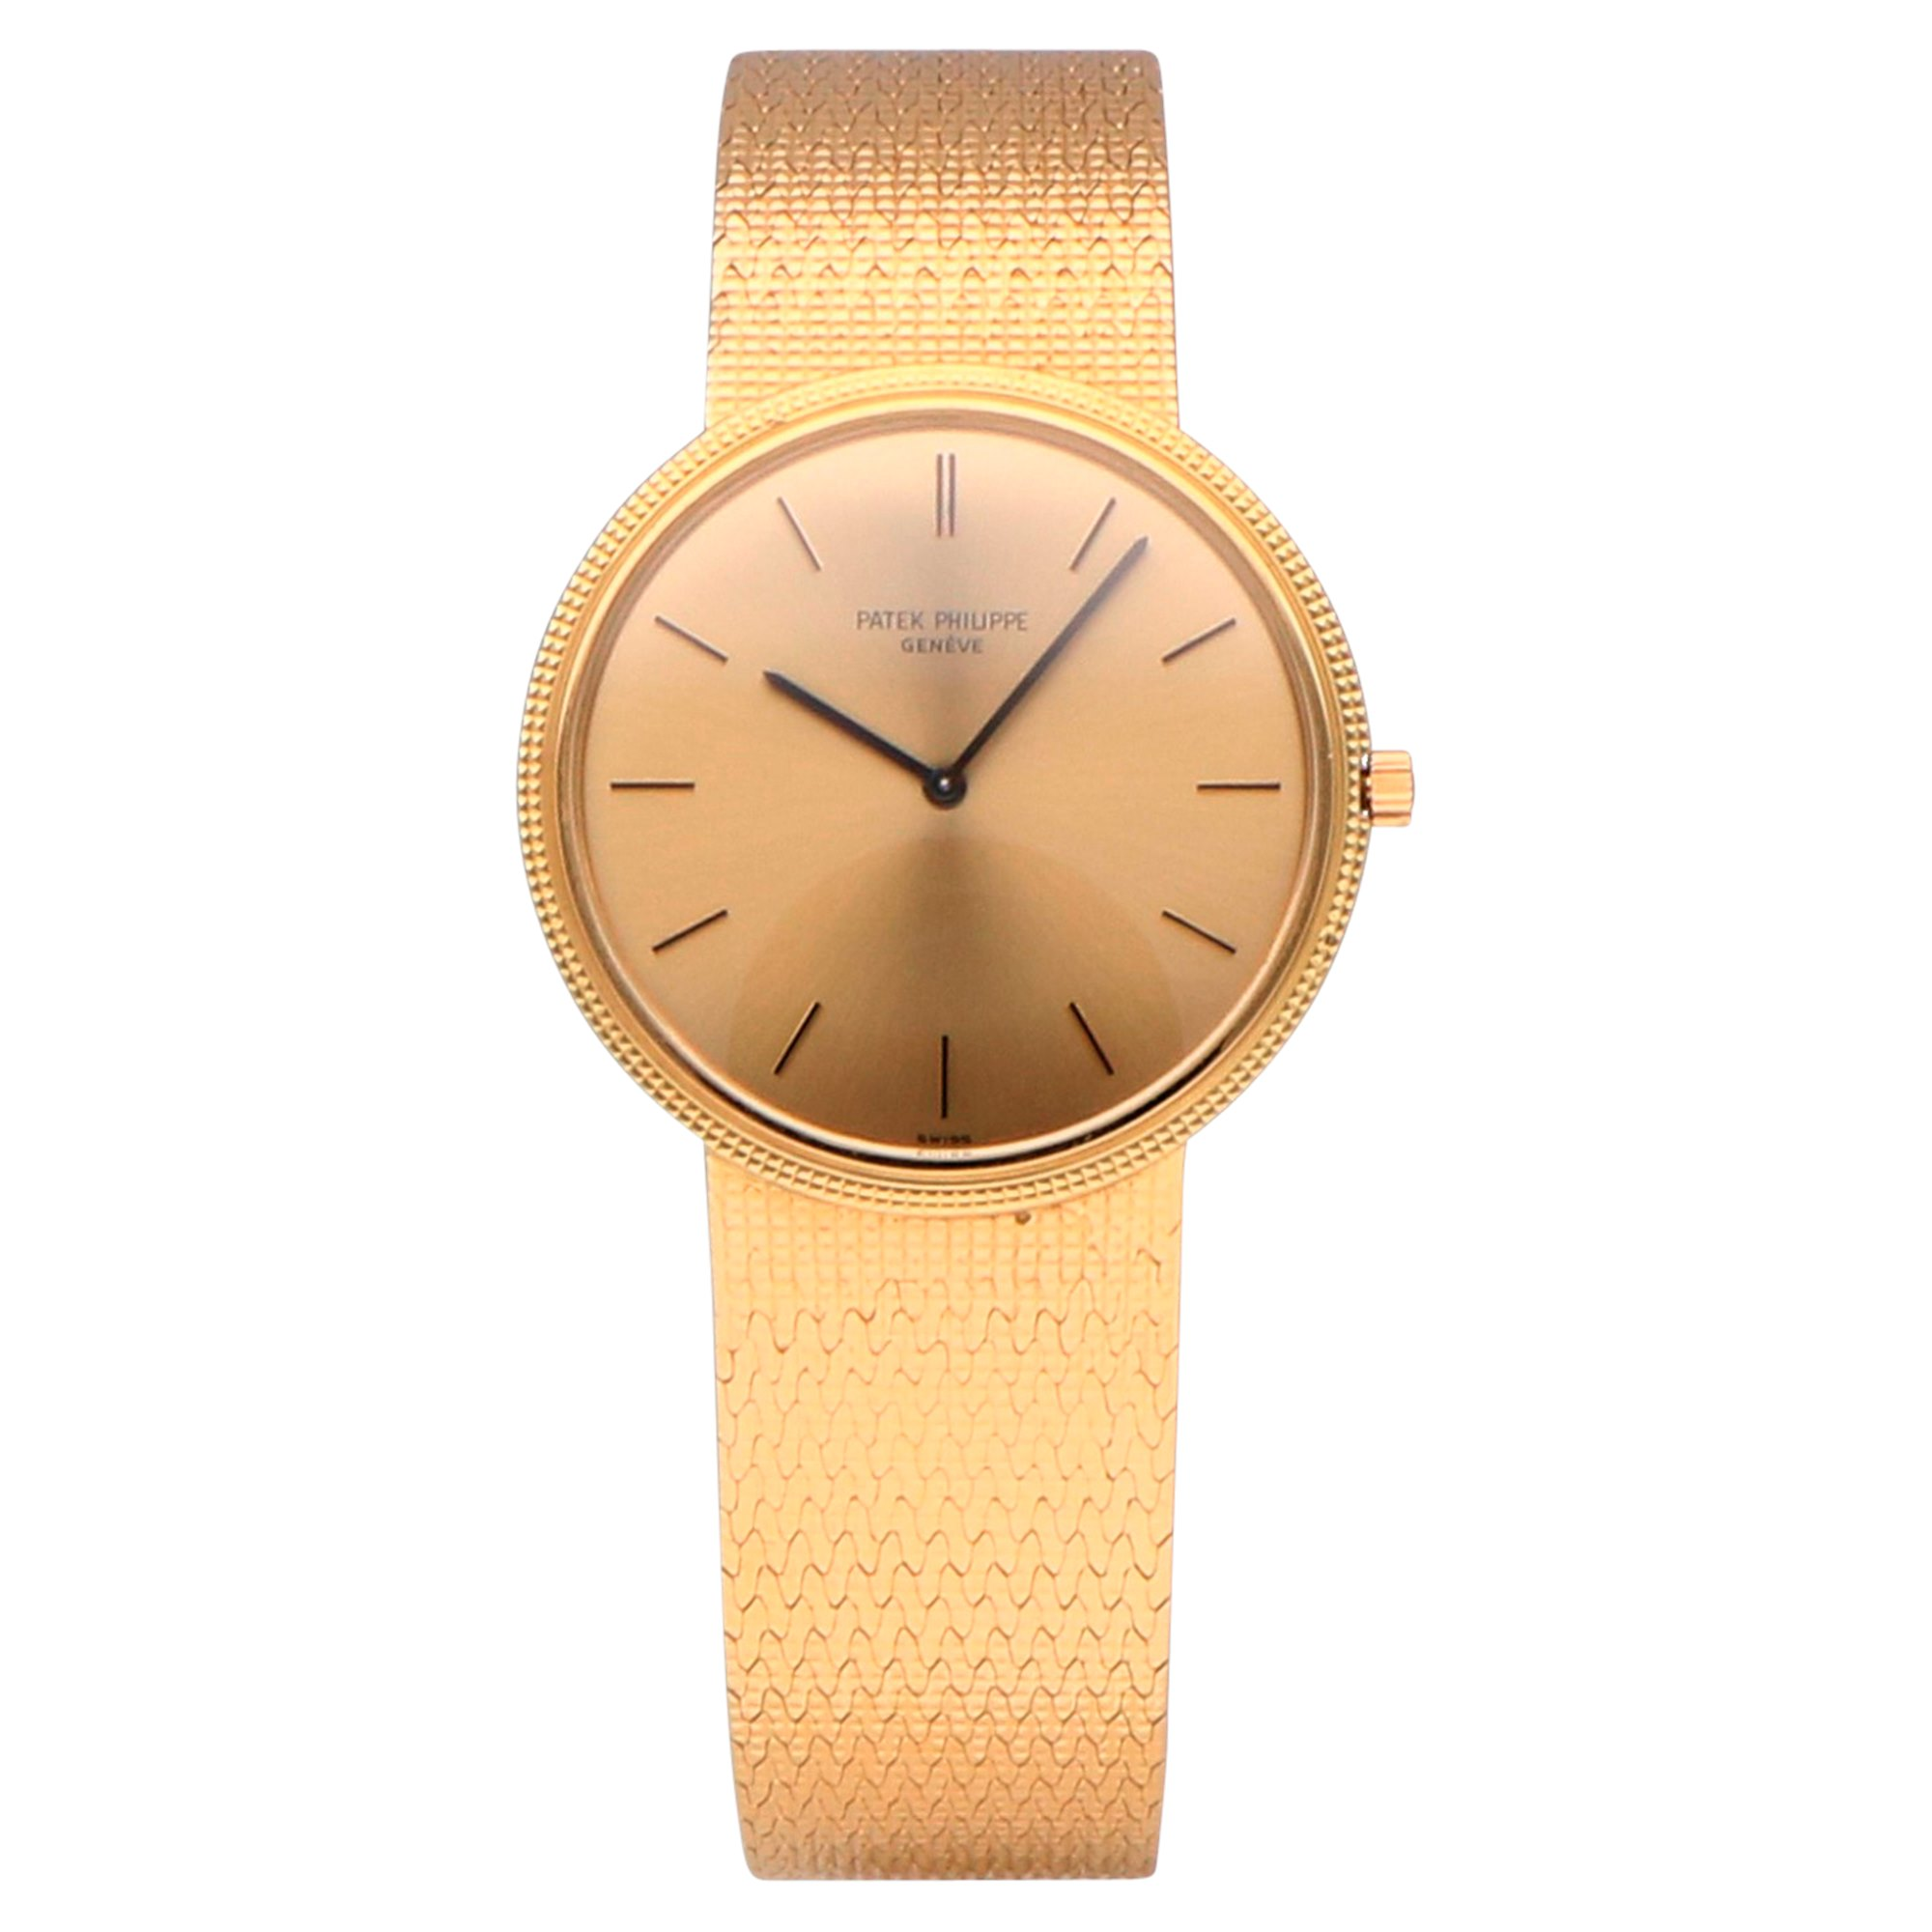 Patek Philippe Calatrava 18k Yellow Gold 3520